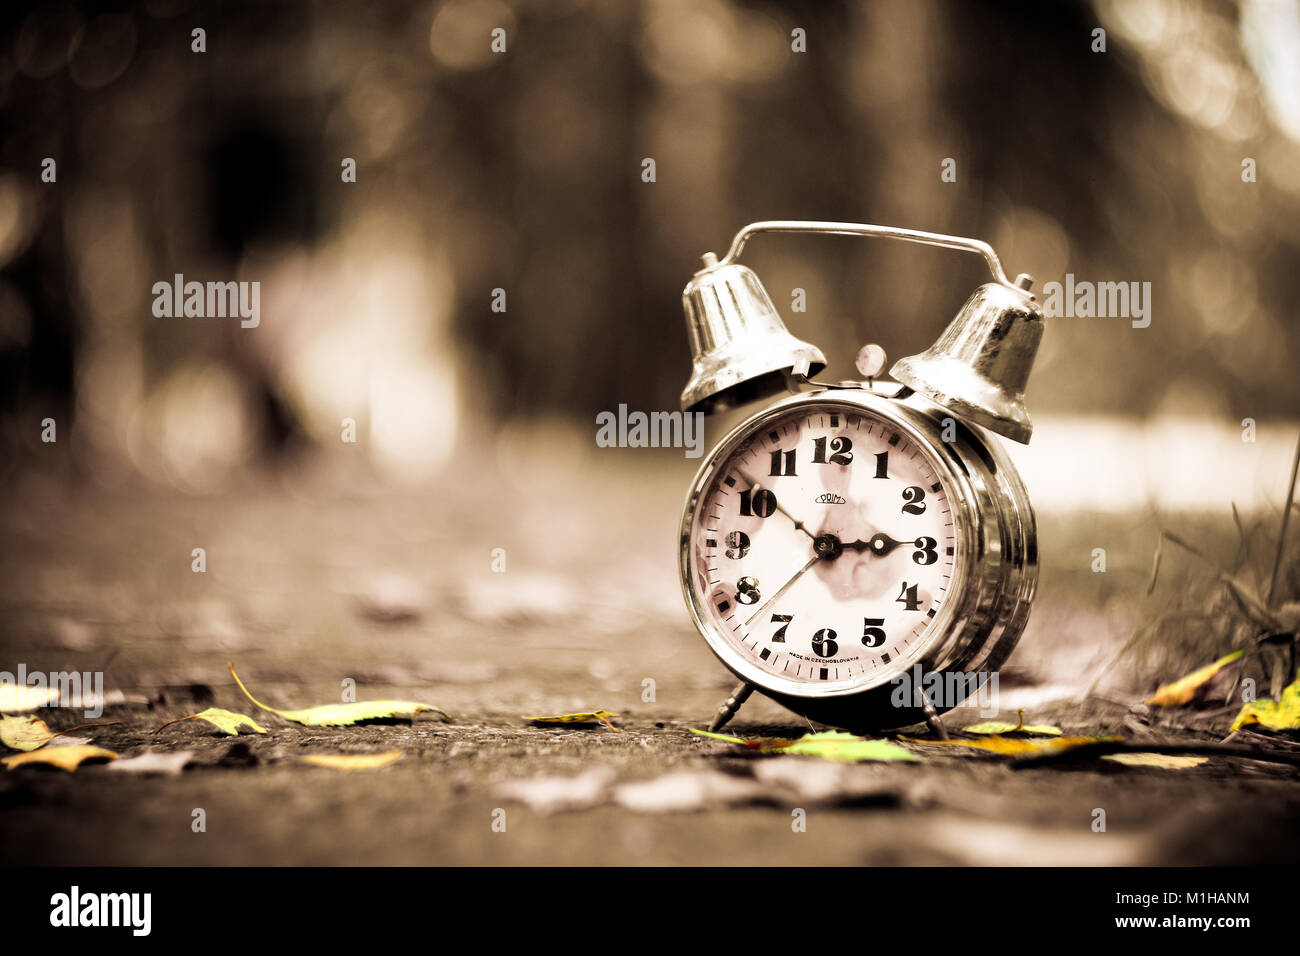 A vintage, little bit rusty, alarm clock standing on a road in the nature. The hands are moving. - Stock Image